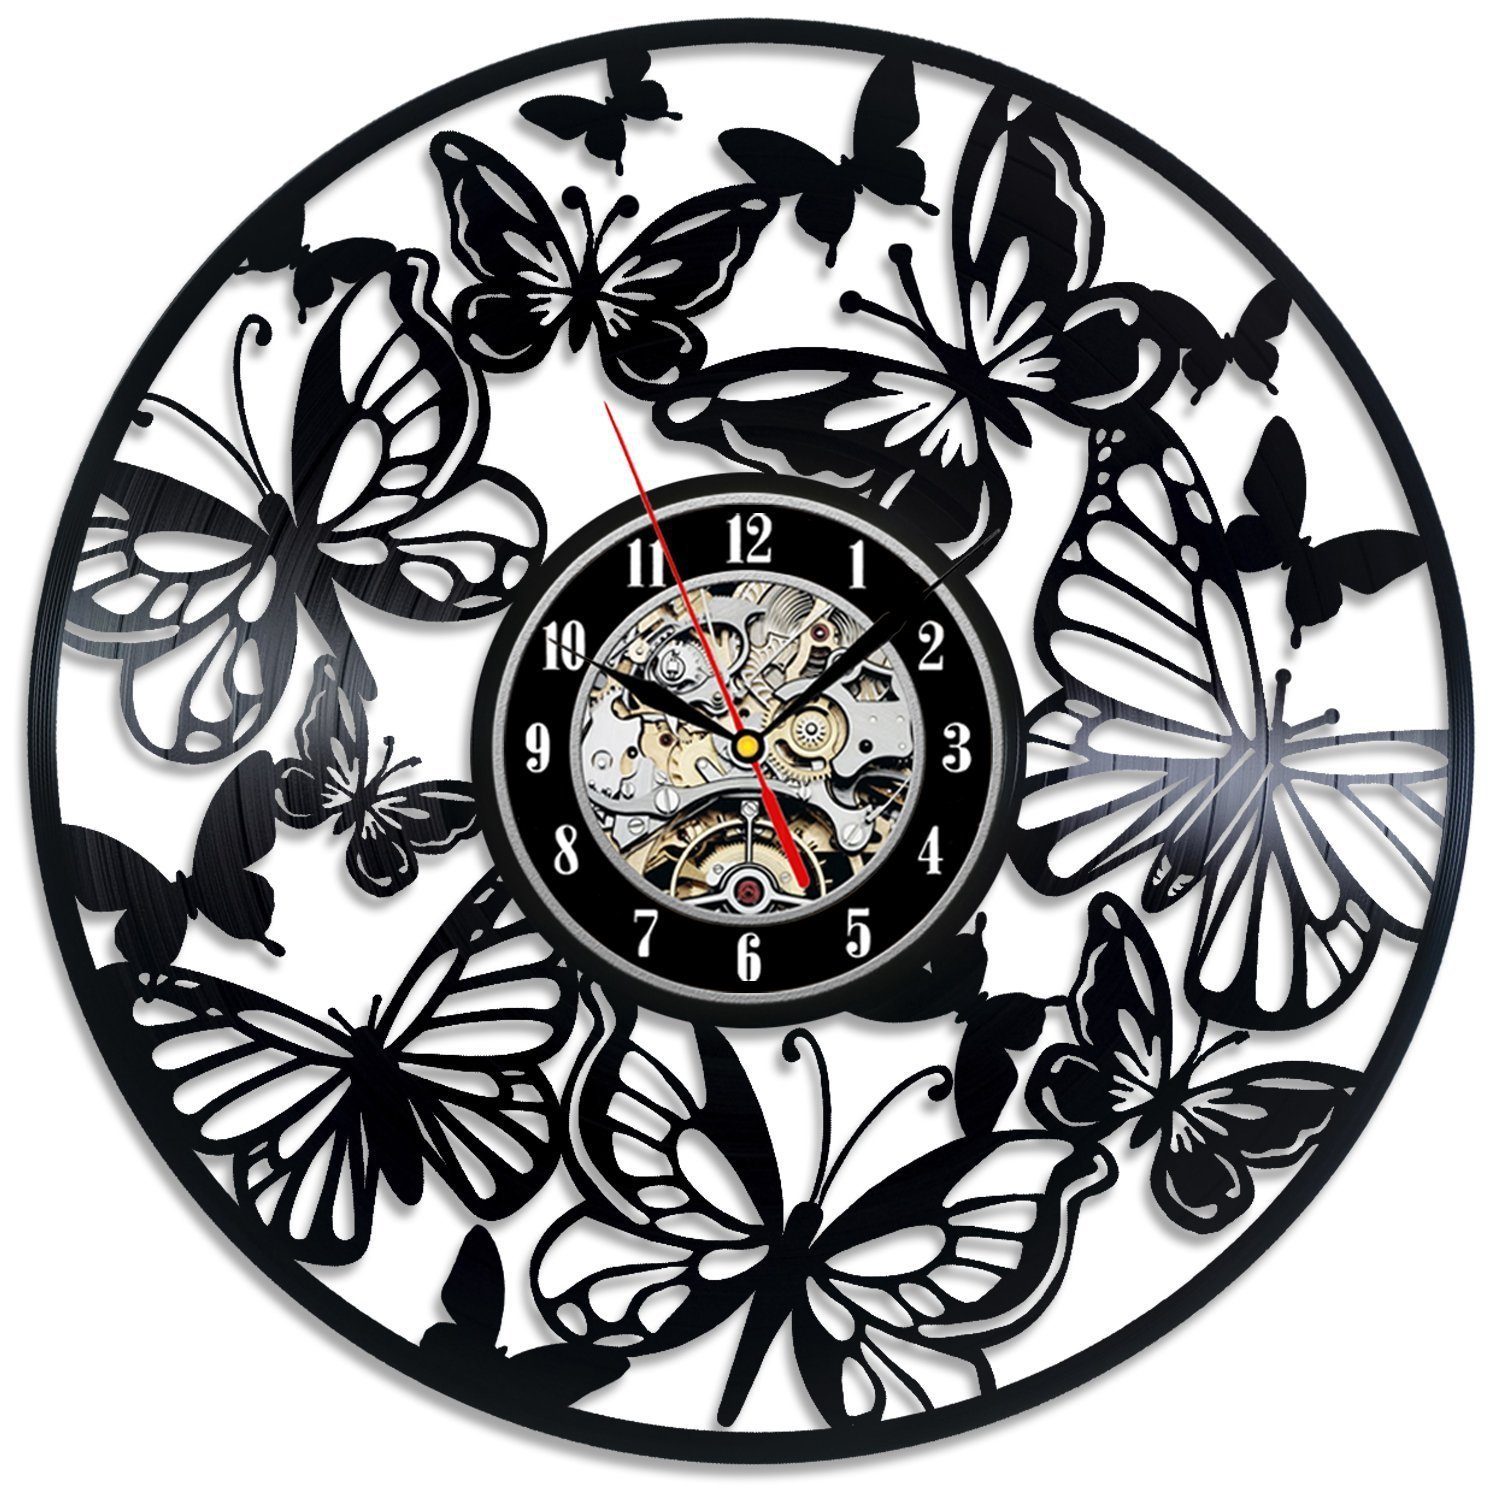 Vinyl Wall Clock Vintage Modern Design Butterfly Living Room Decoration Unique Watch Wall Clocks Home Decor Silent 12 inch